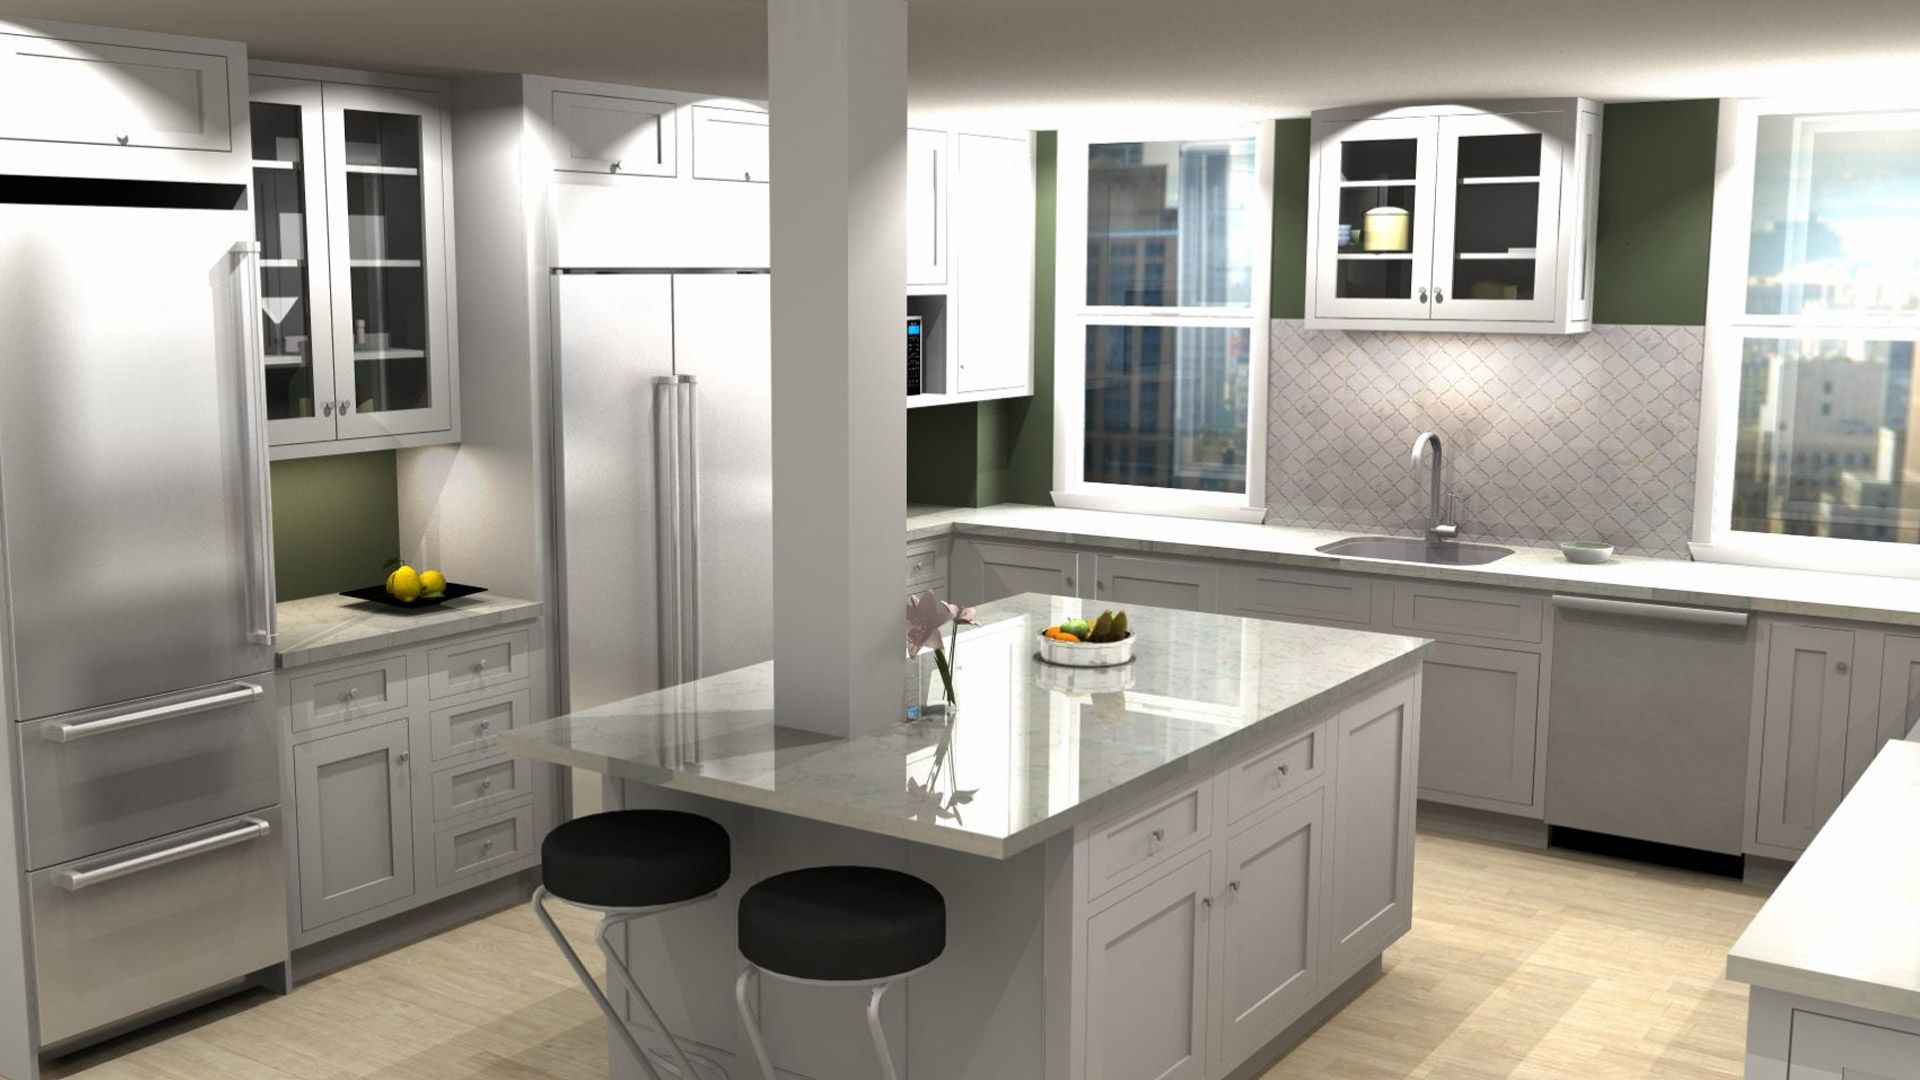 2020 Design Kitchen Remodel Kitchen Inspiration Design Kitchen